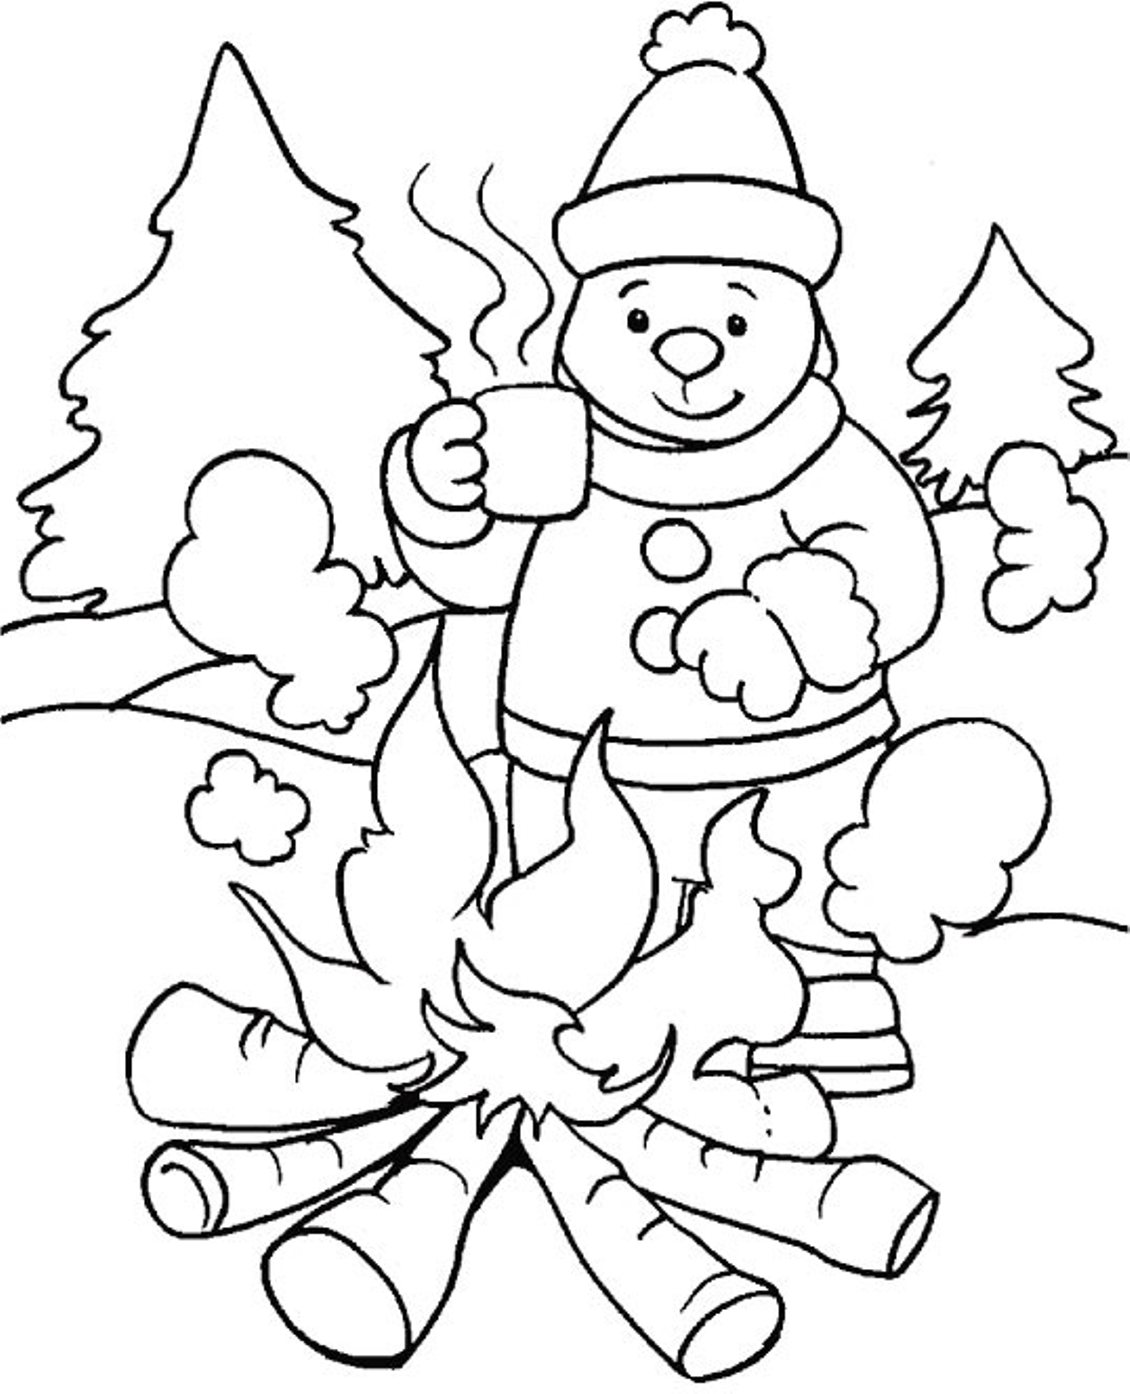 seasons coloring pages - photo#35